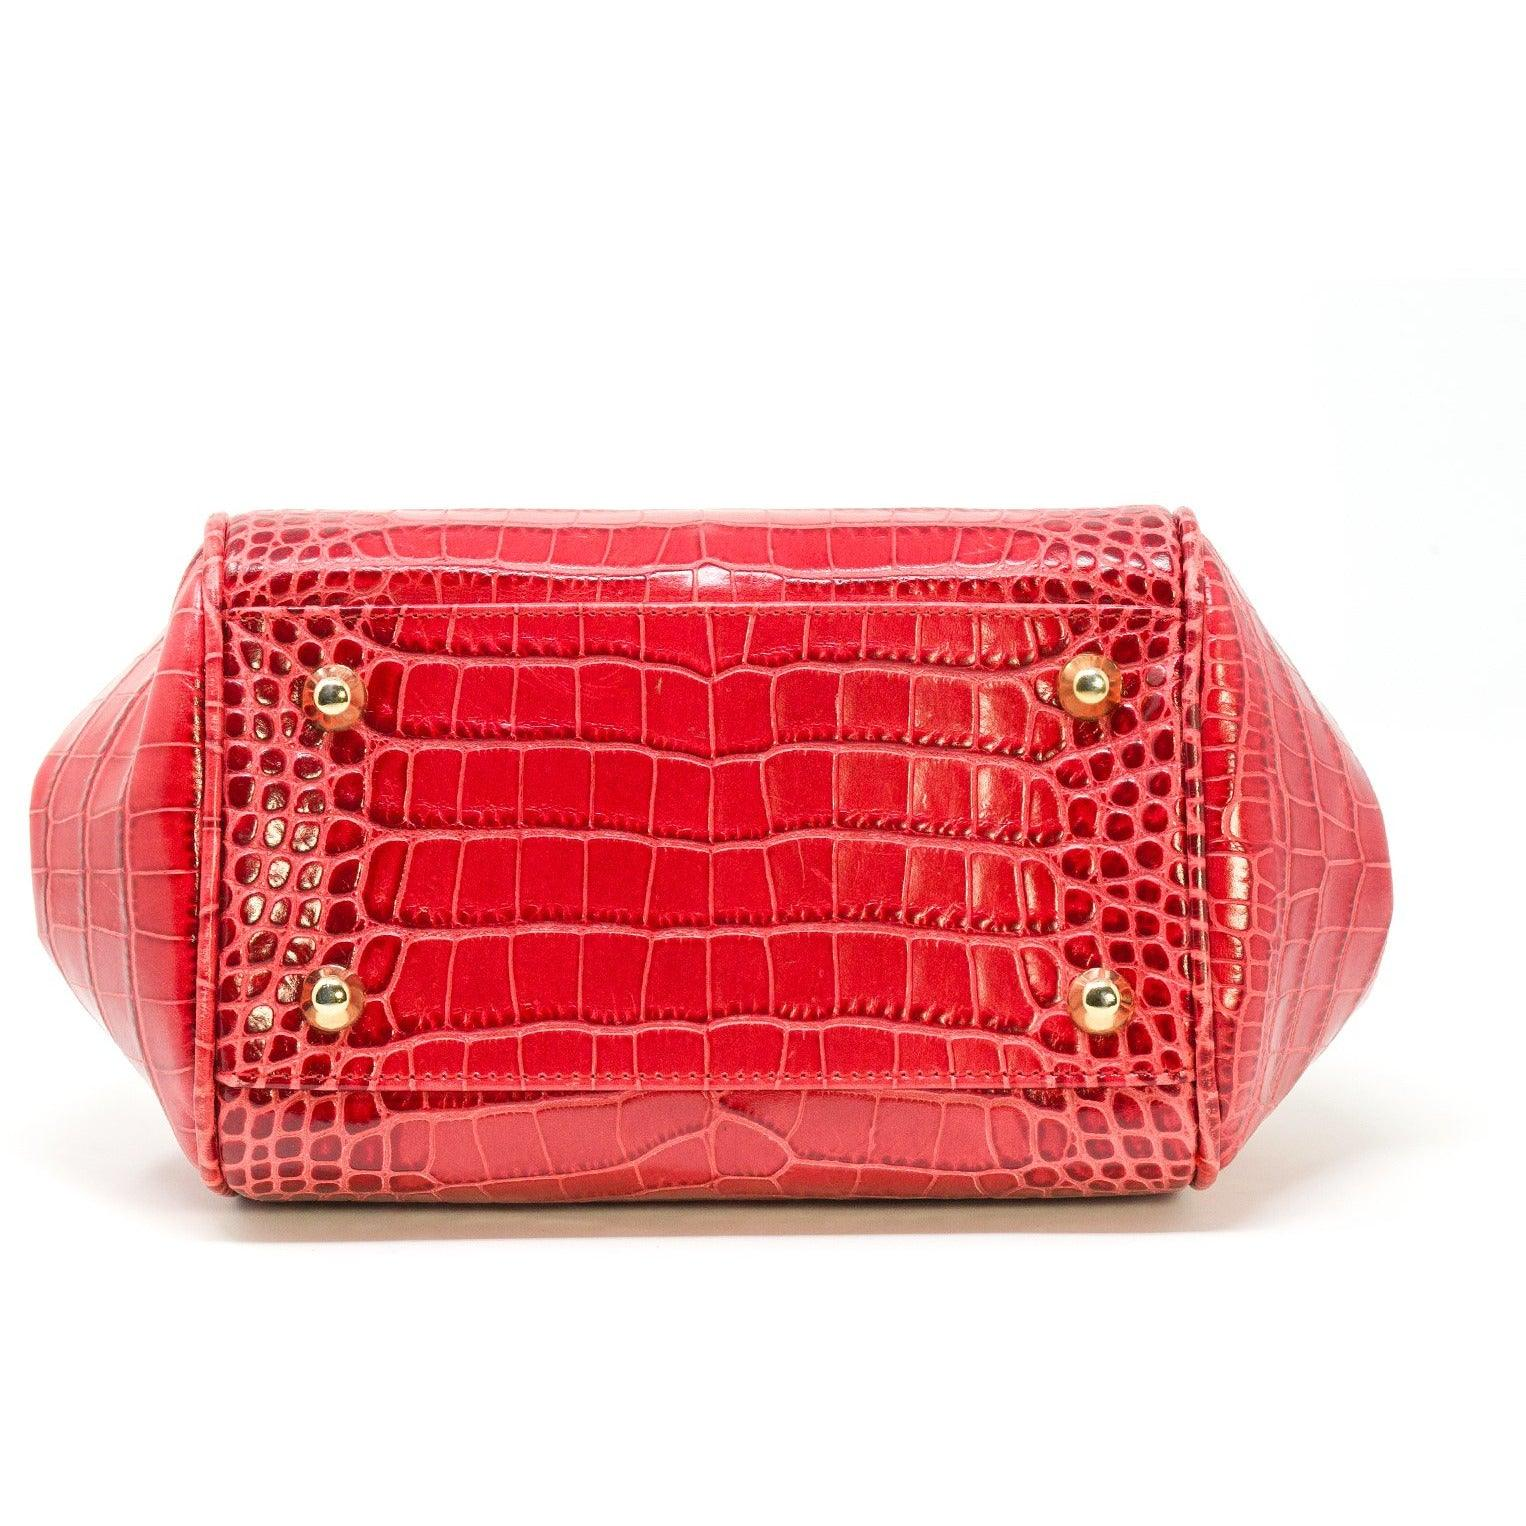 JT265 5403 Top Handle Printed Crocodile Bag - New Fall Winter 2019-2020 Collection